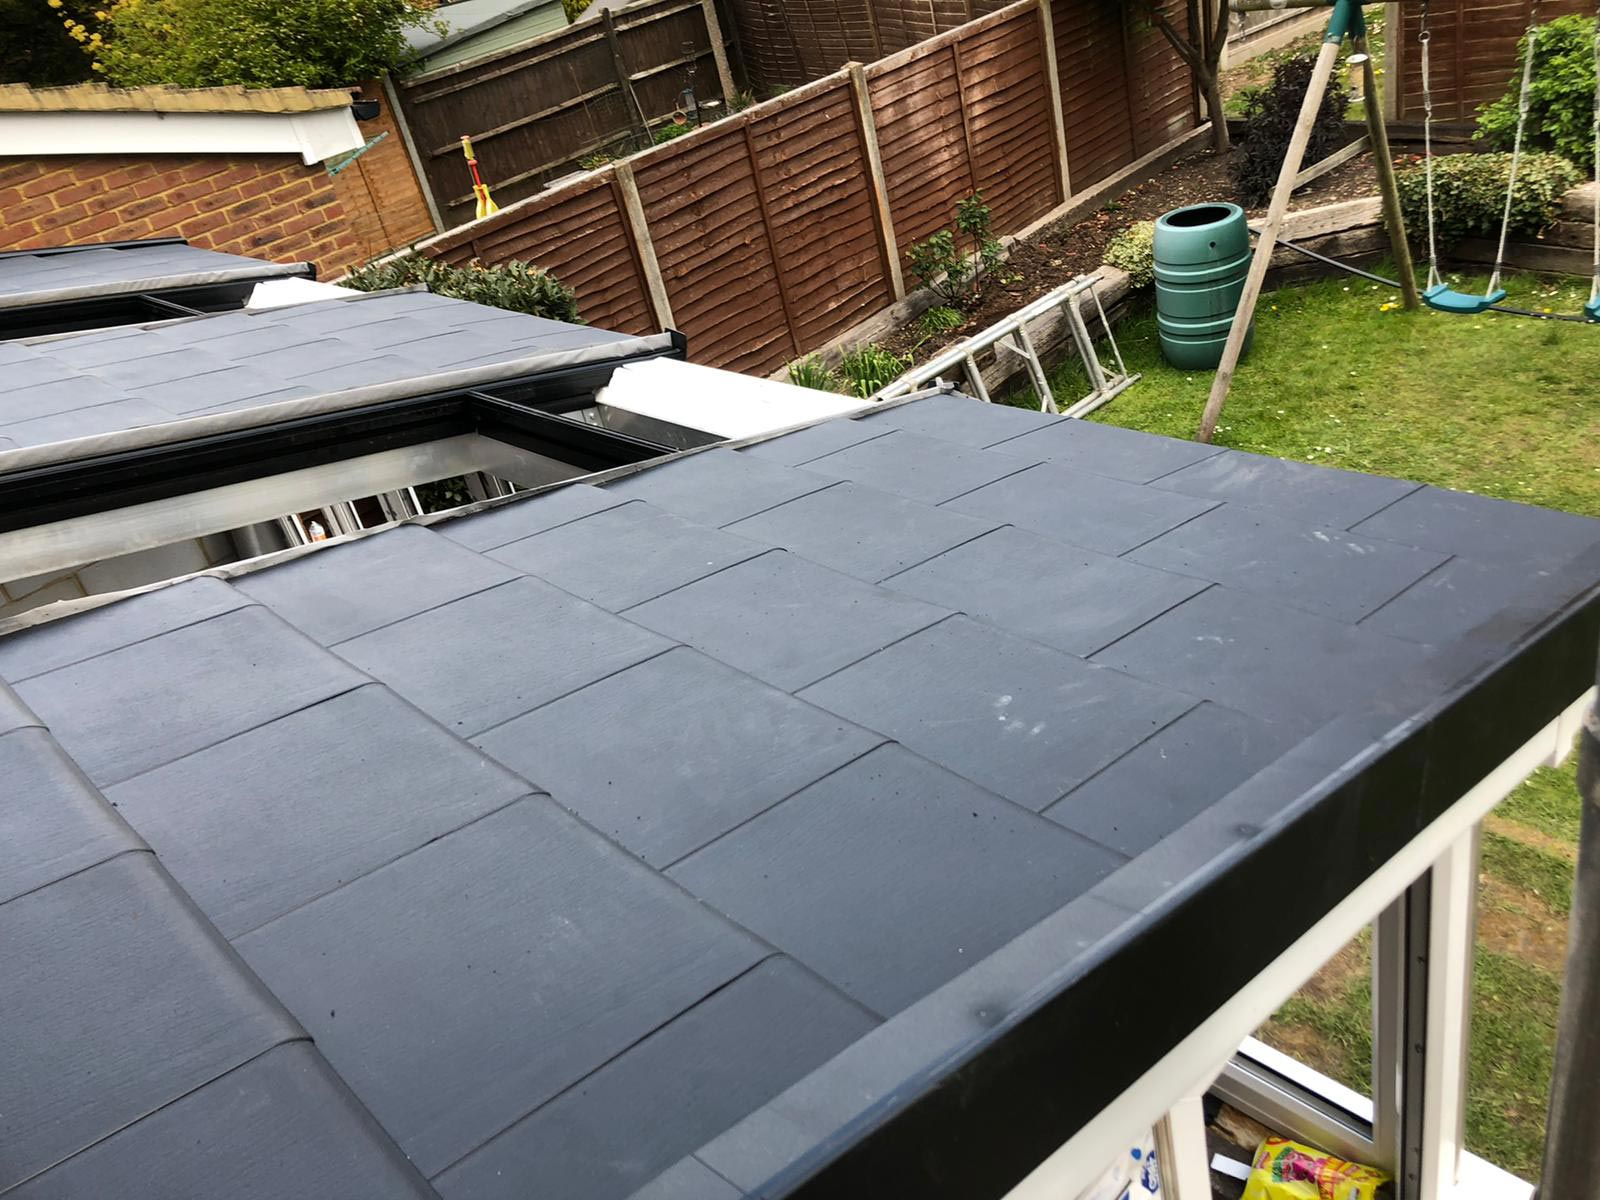 2105-tiled-roof-conservatory-top